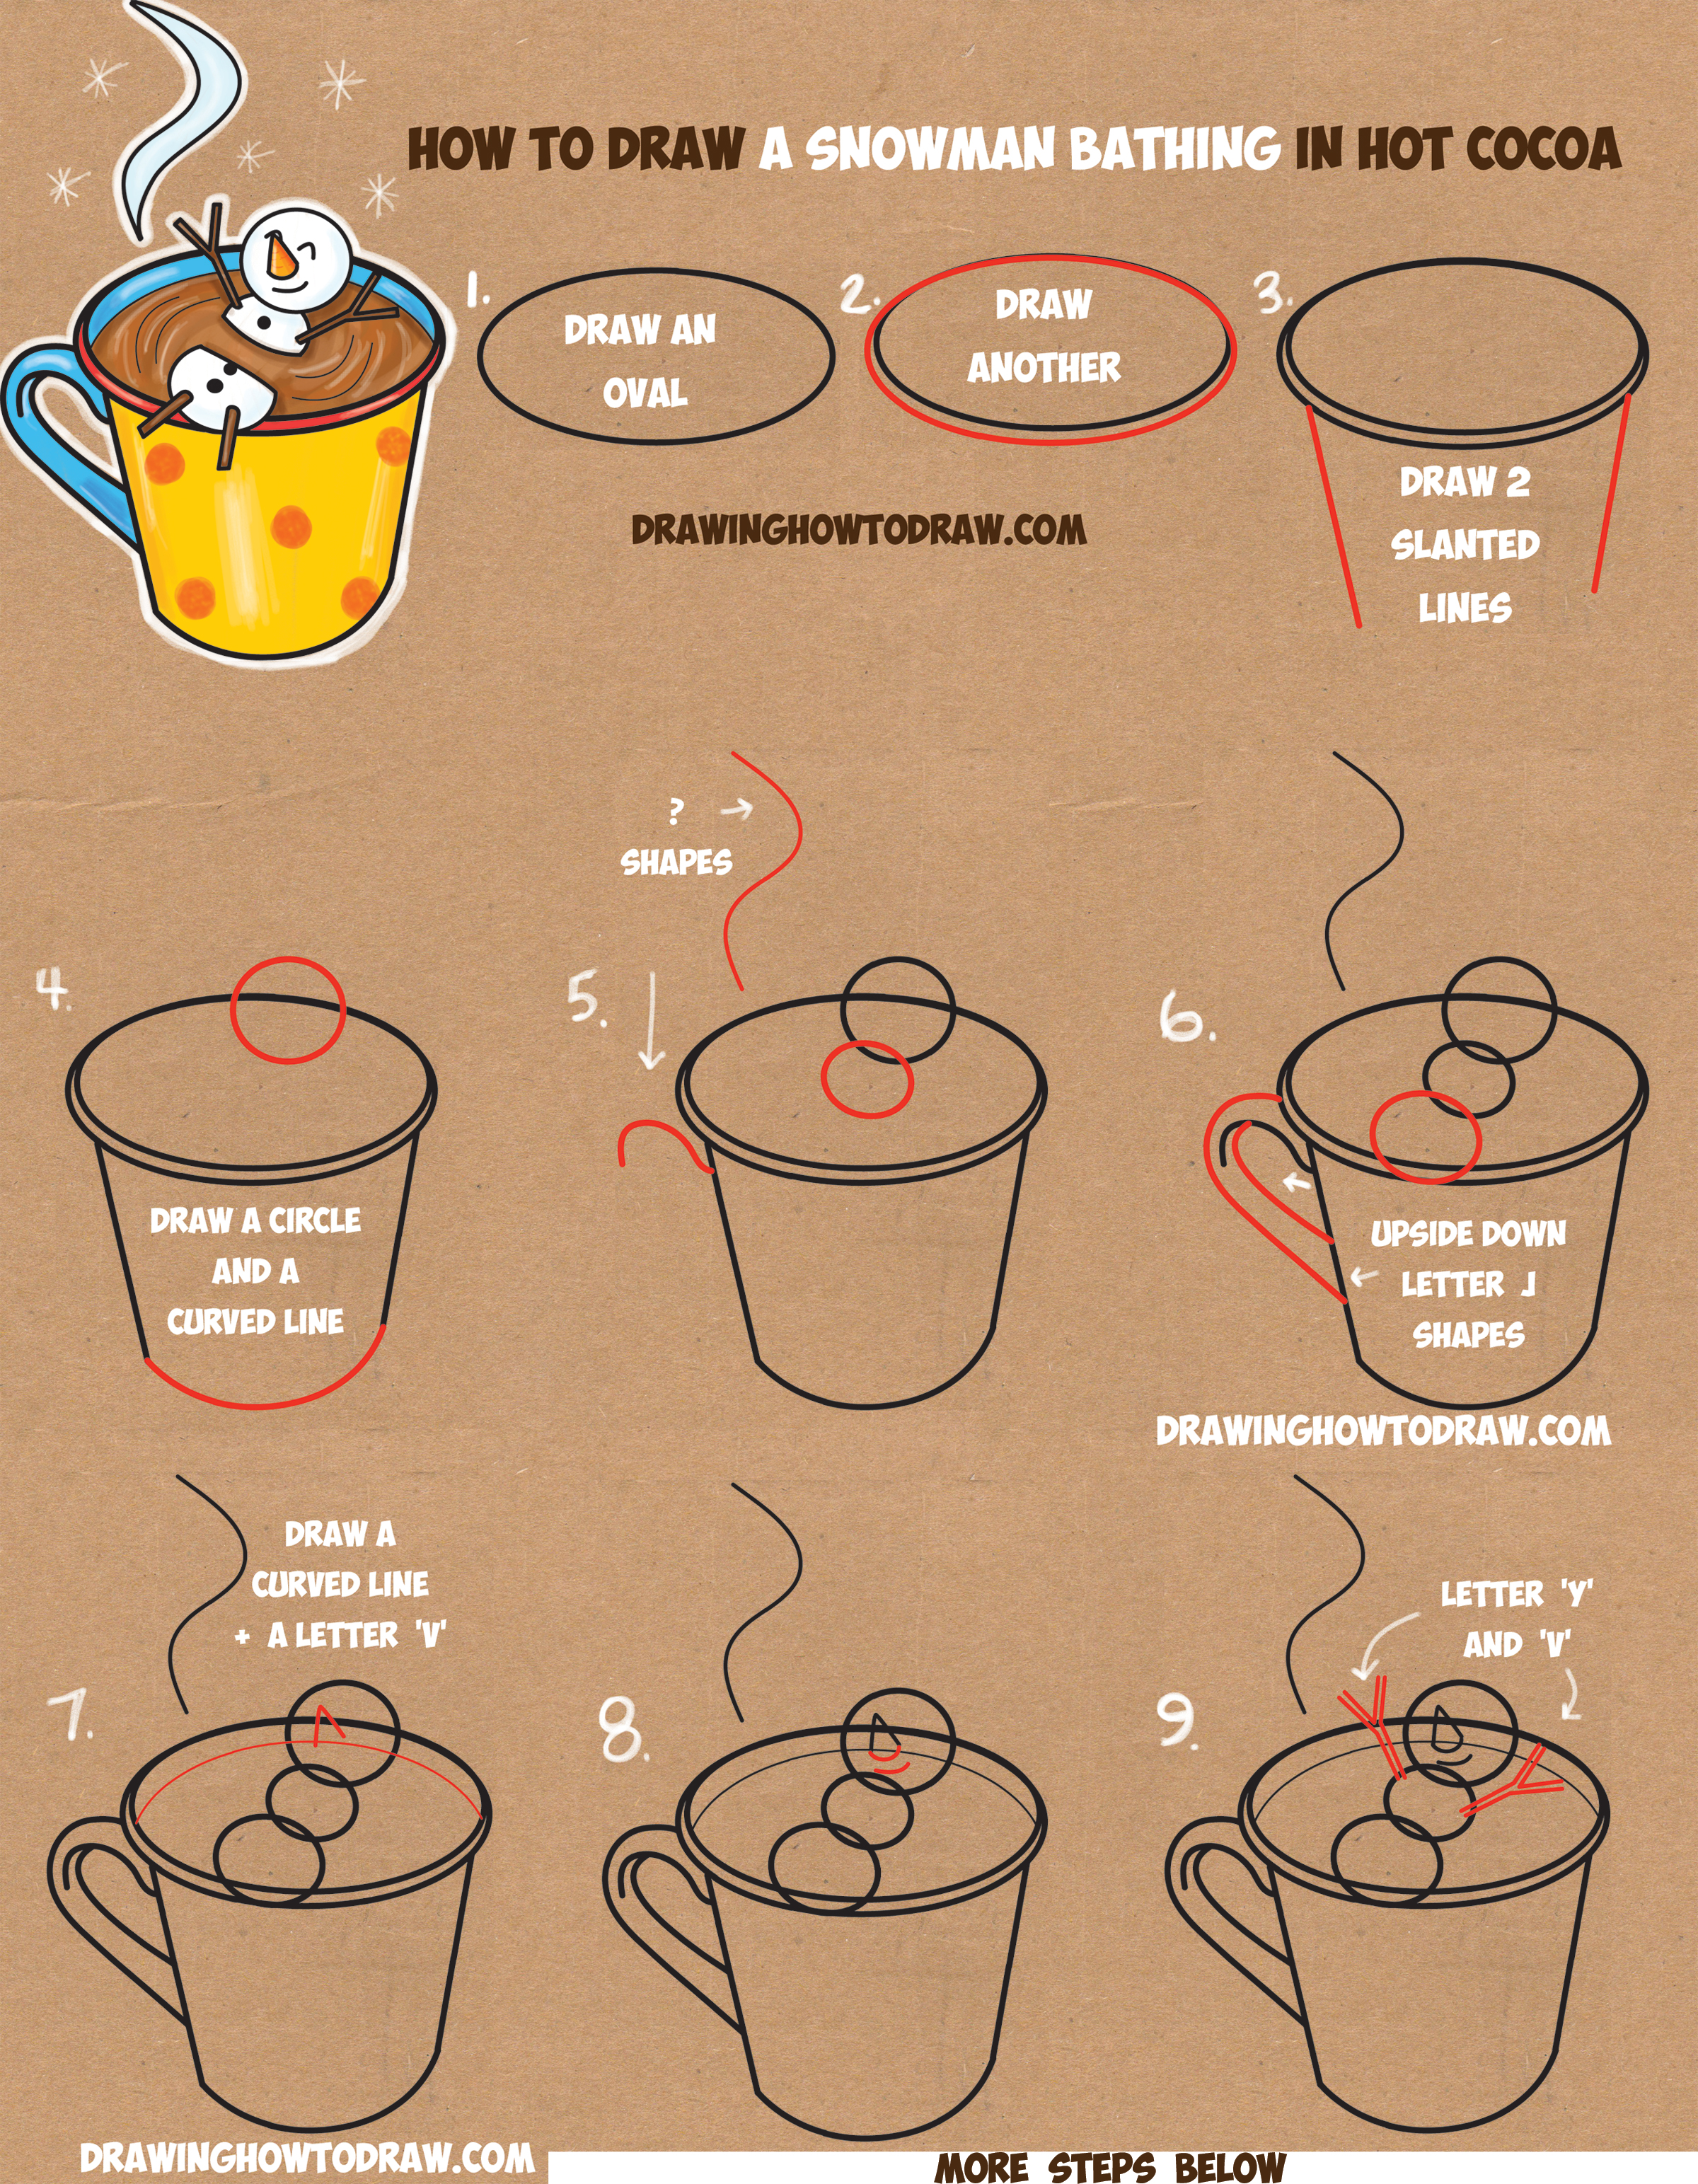 How to Draw a Snowman Bathing in a Hot Cup of Cocoa Easy Step by Step Drawing Tutorial for Kids on Winter